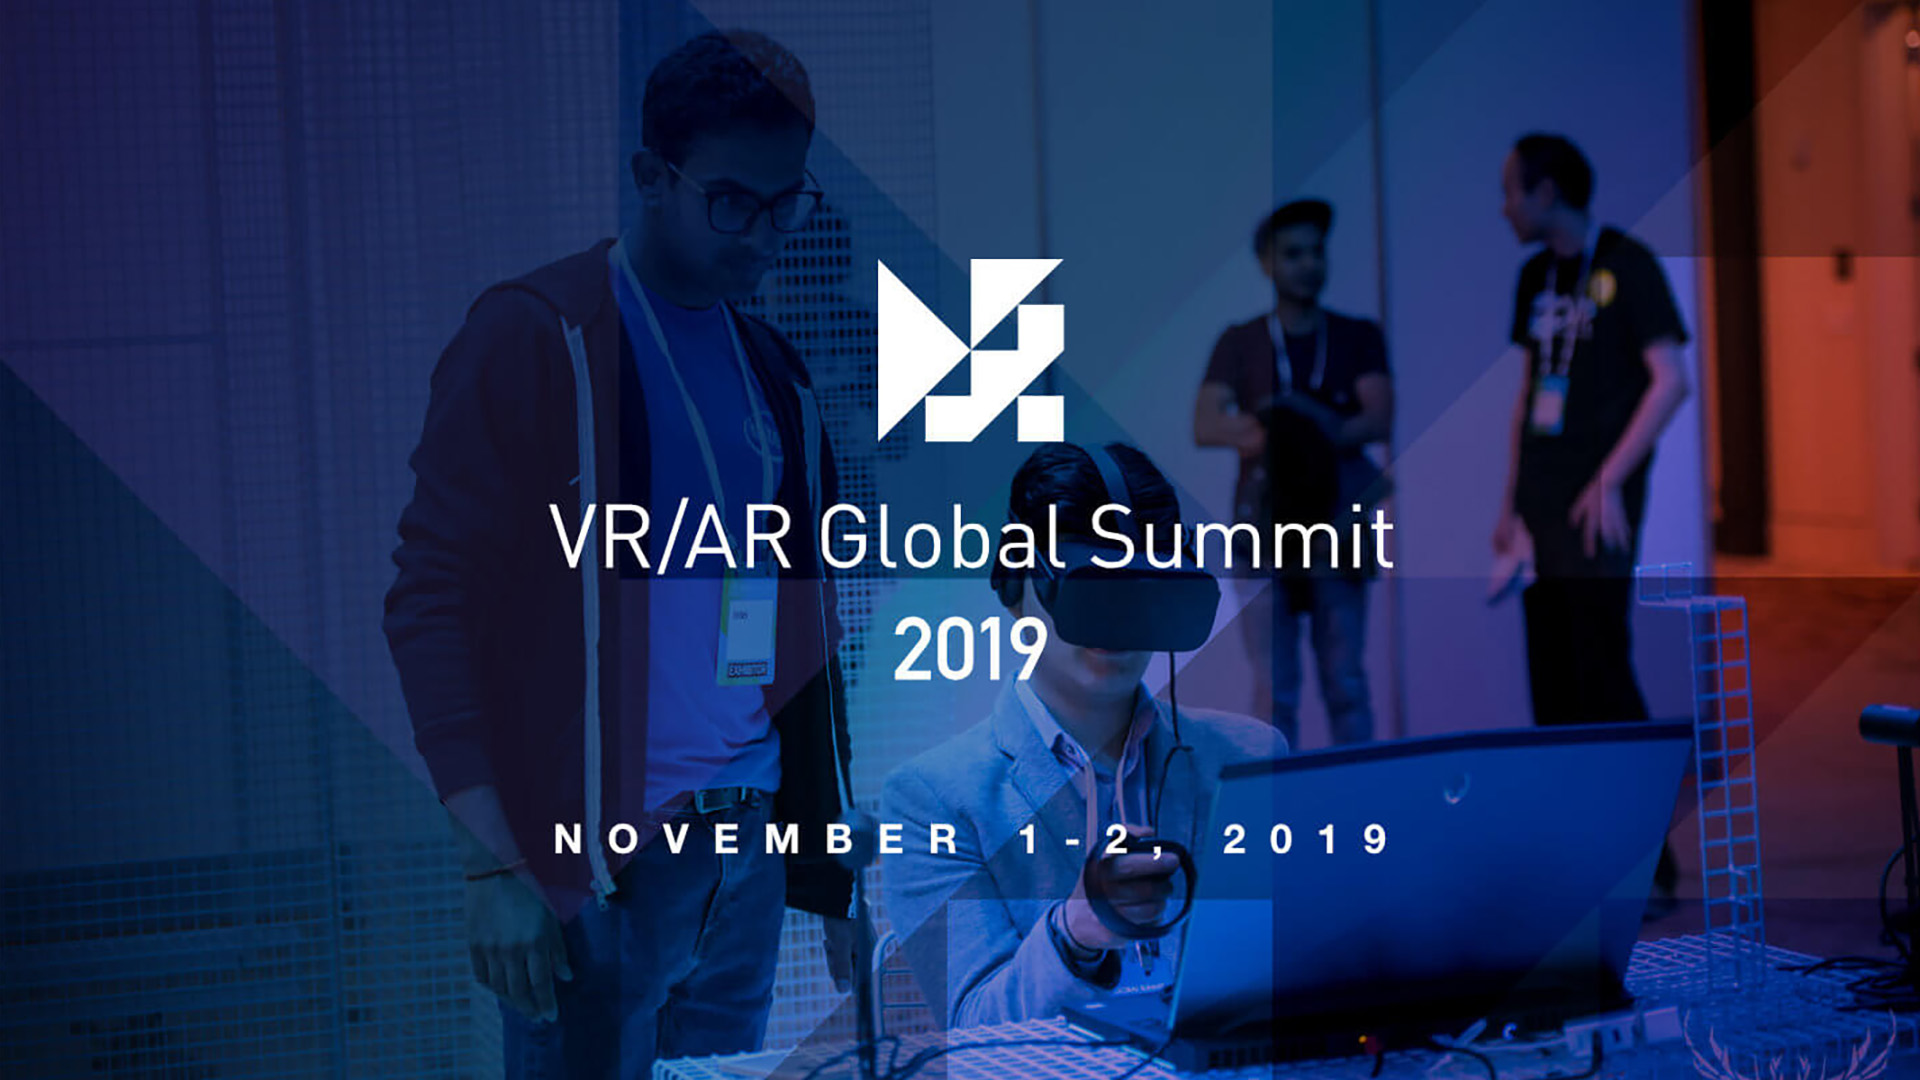 VR AR Global Summit 2019 Banner showing a person in front of computer using virtual reality